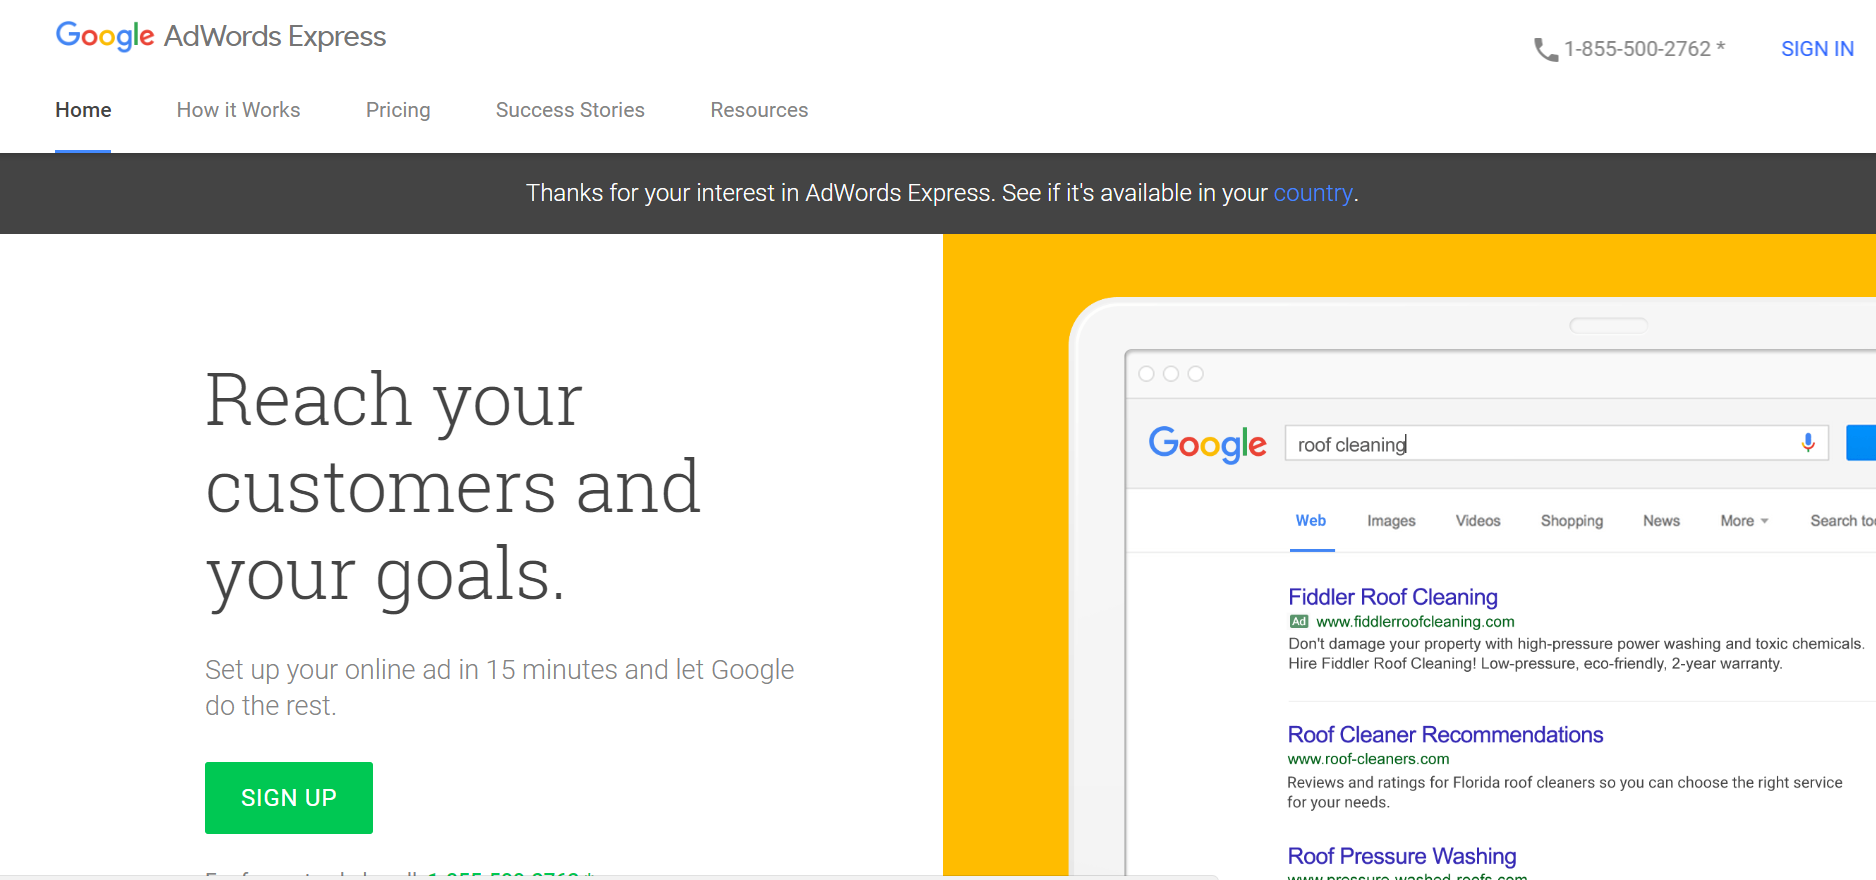 how to use Google Adwards Express